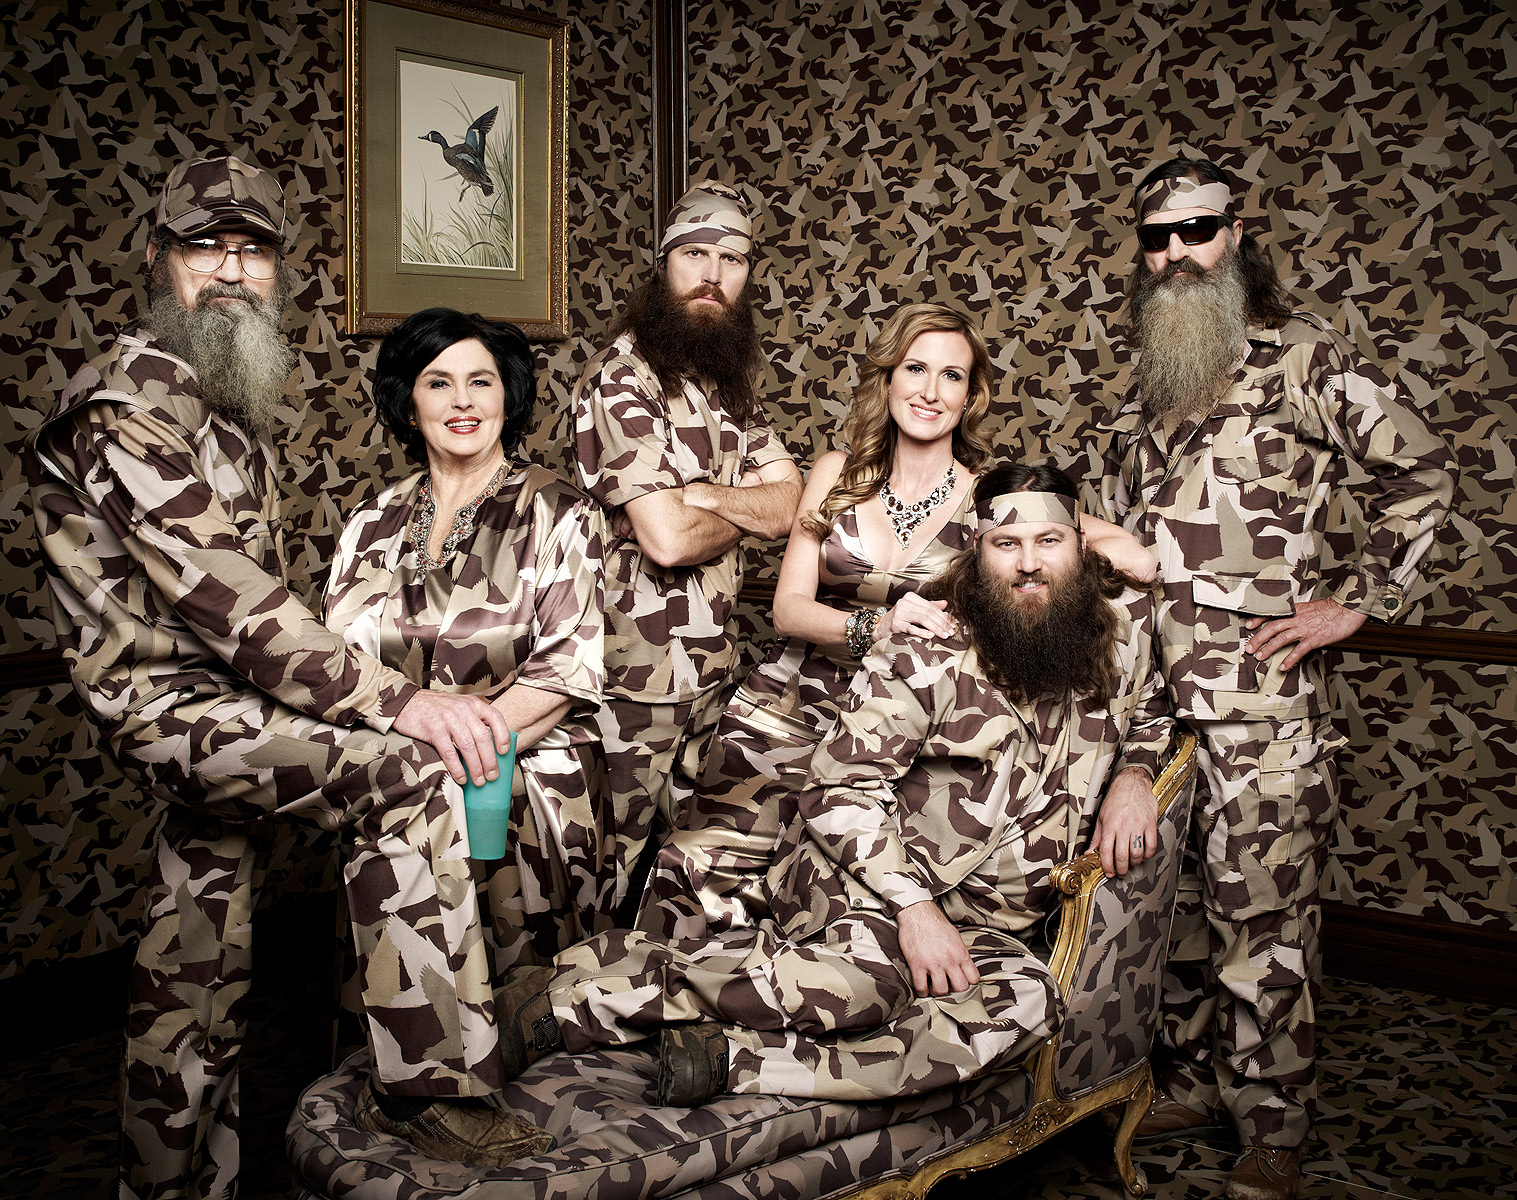 Duck Dynasty Appeal Reaches Millions